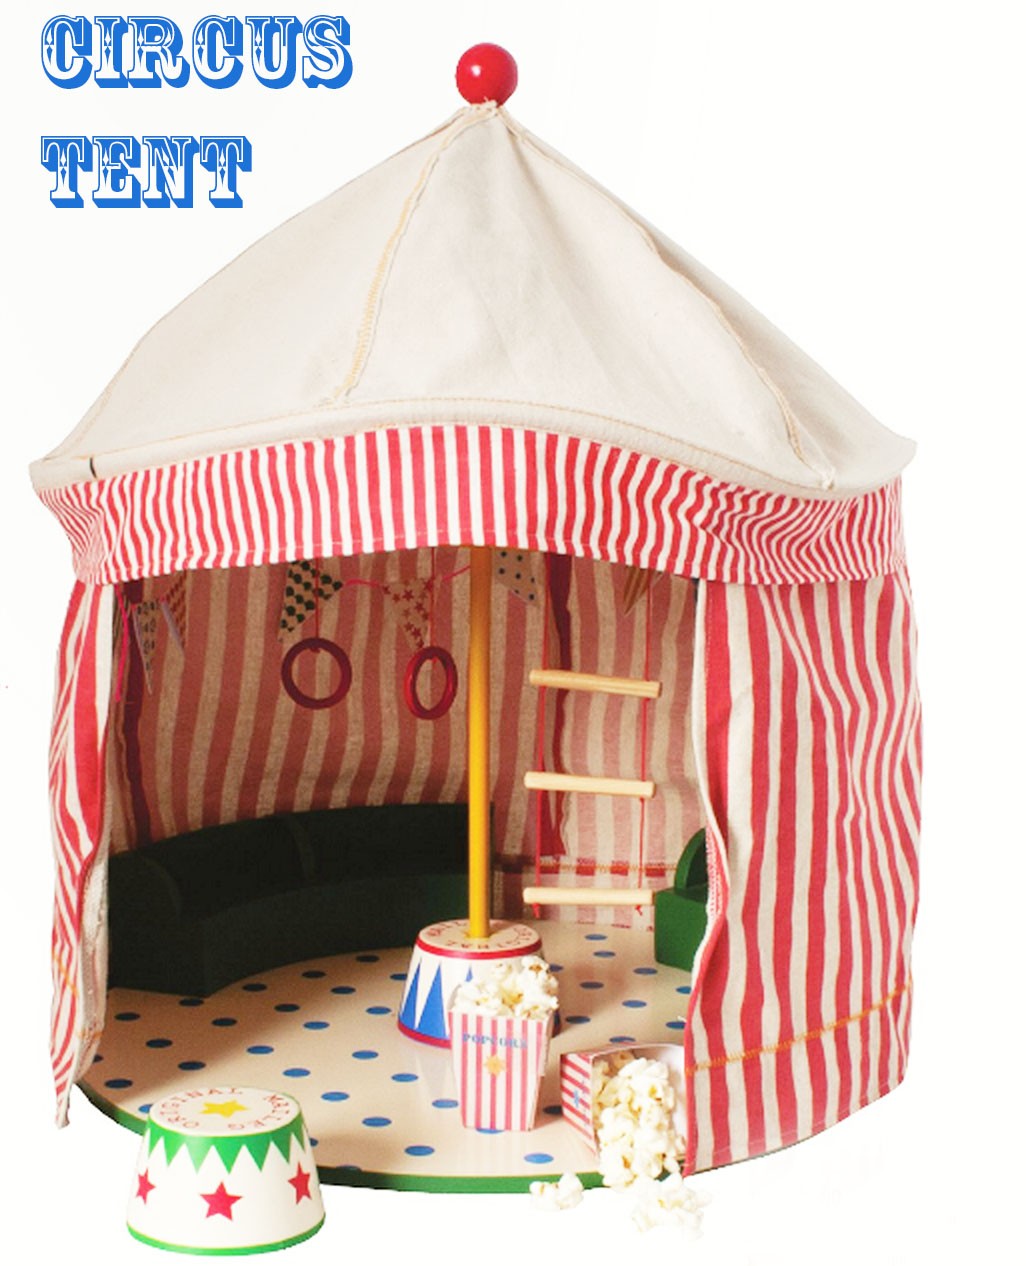 Kandeeland: 7 Of The Coolest Play Tents